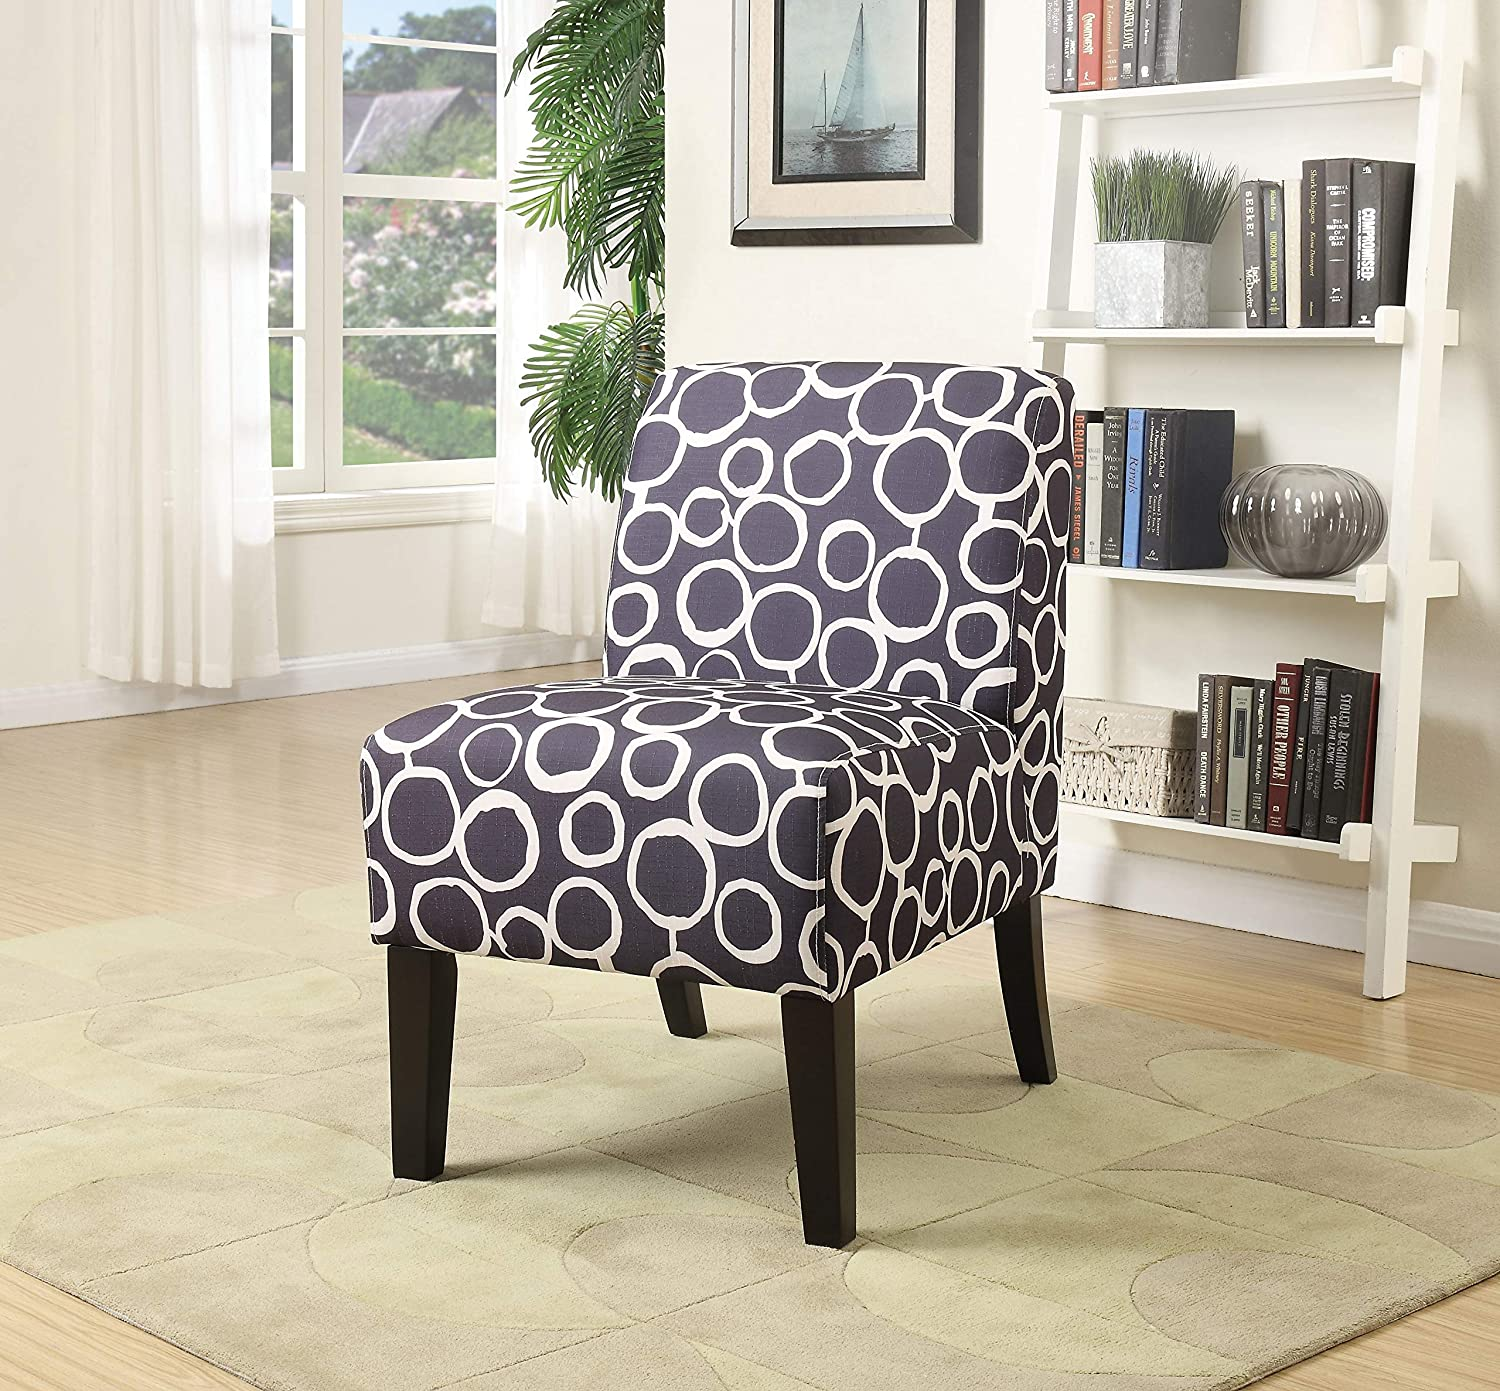 Benzara Ollano Accent Chair, Pattern Fabric, Livid and White